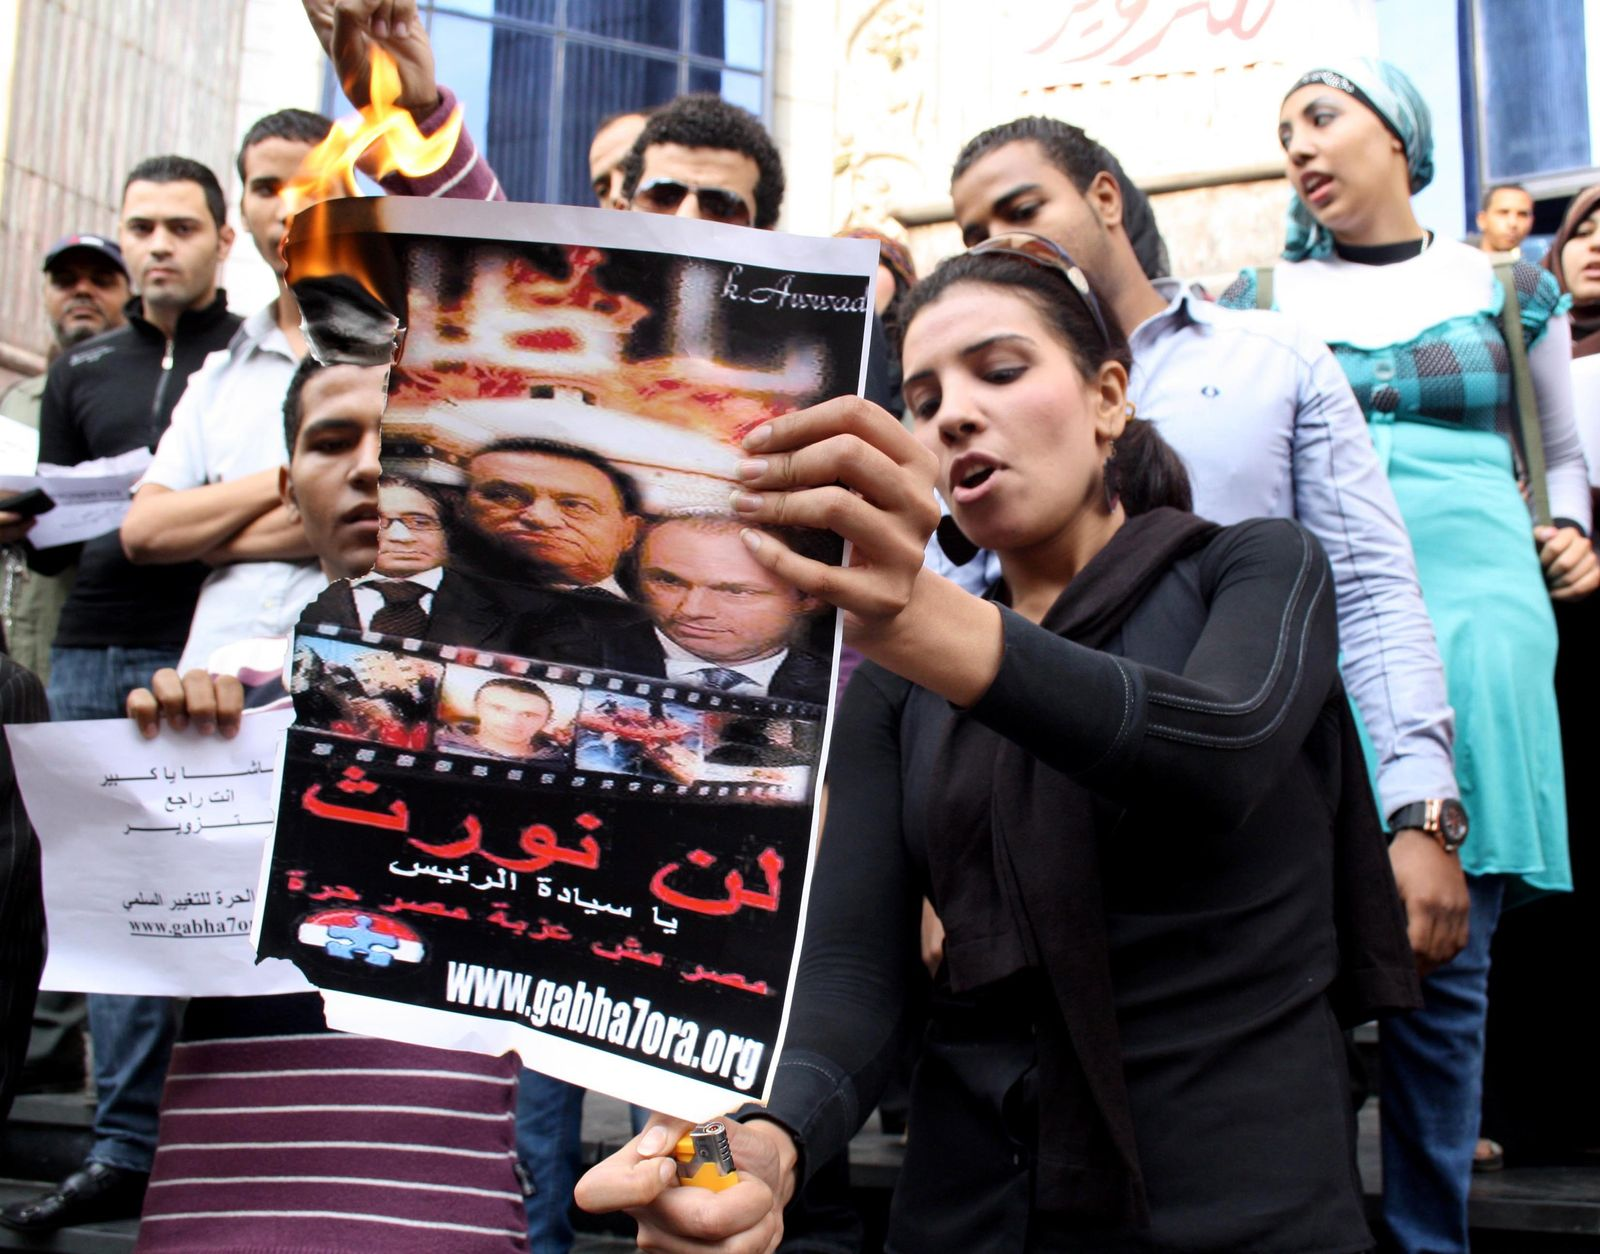 Supporters of opposition groups protest in Cairo